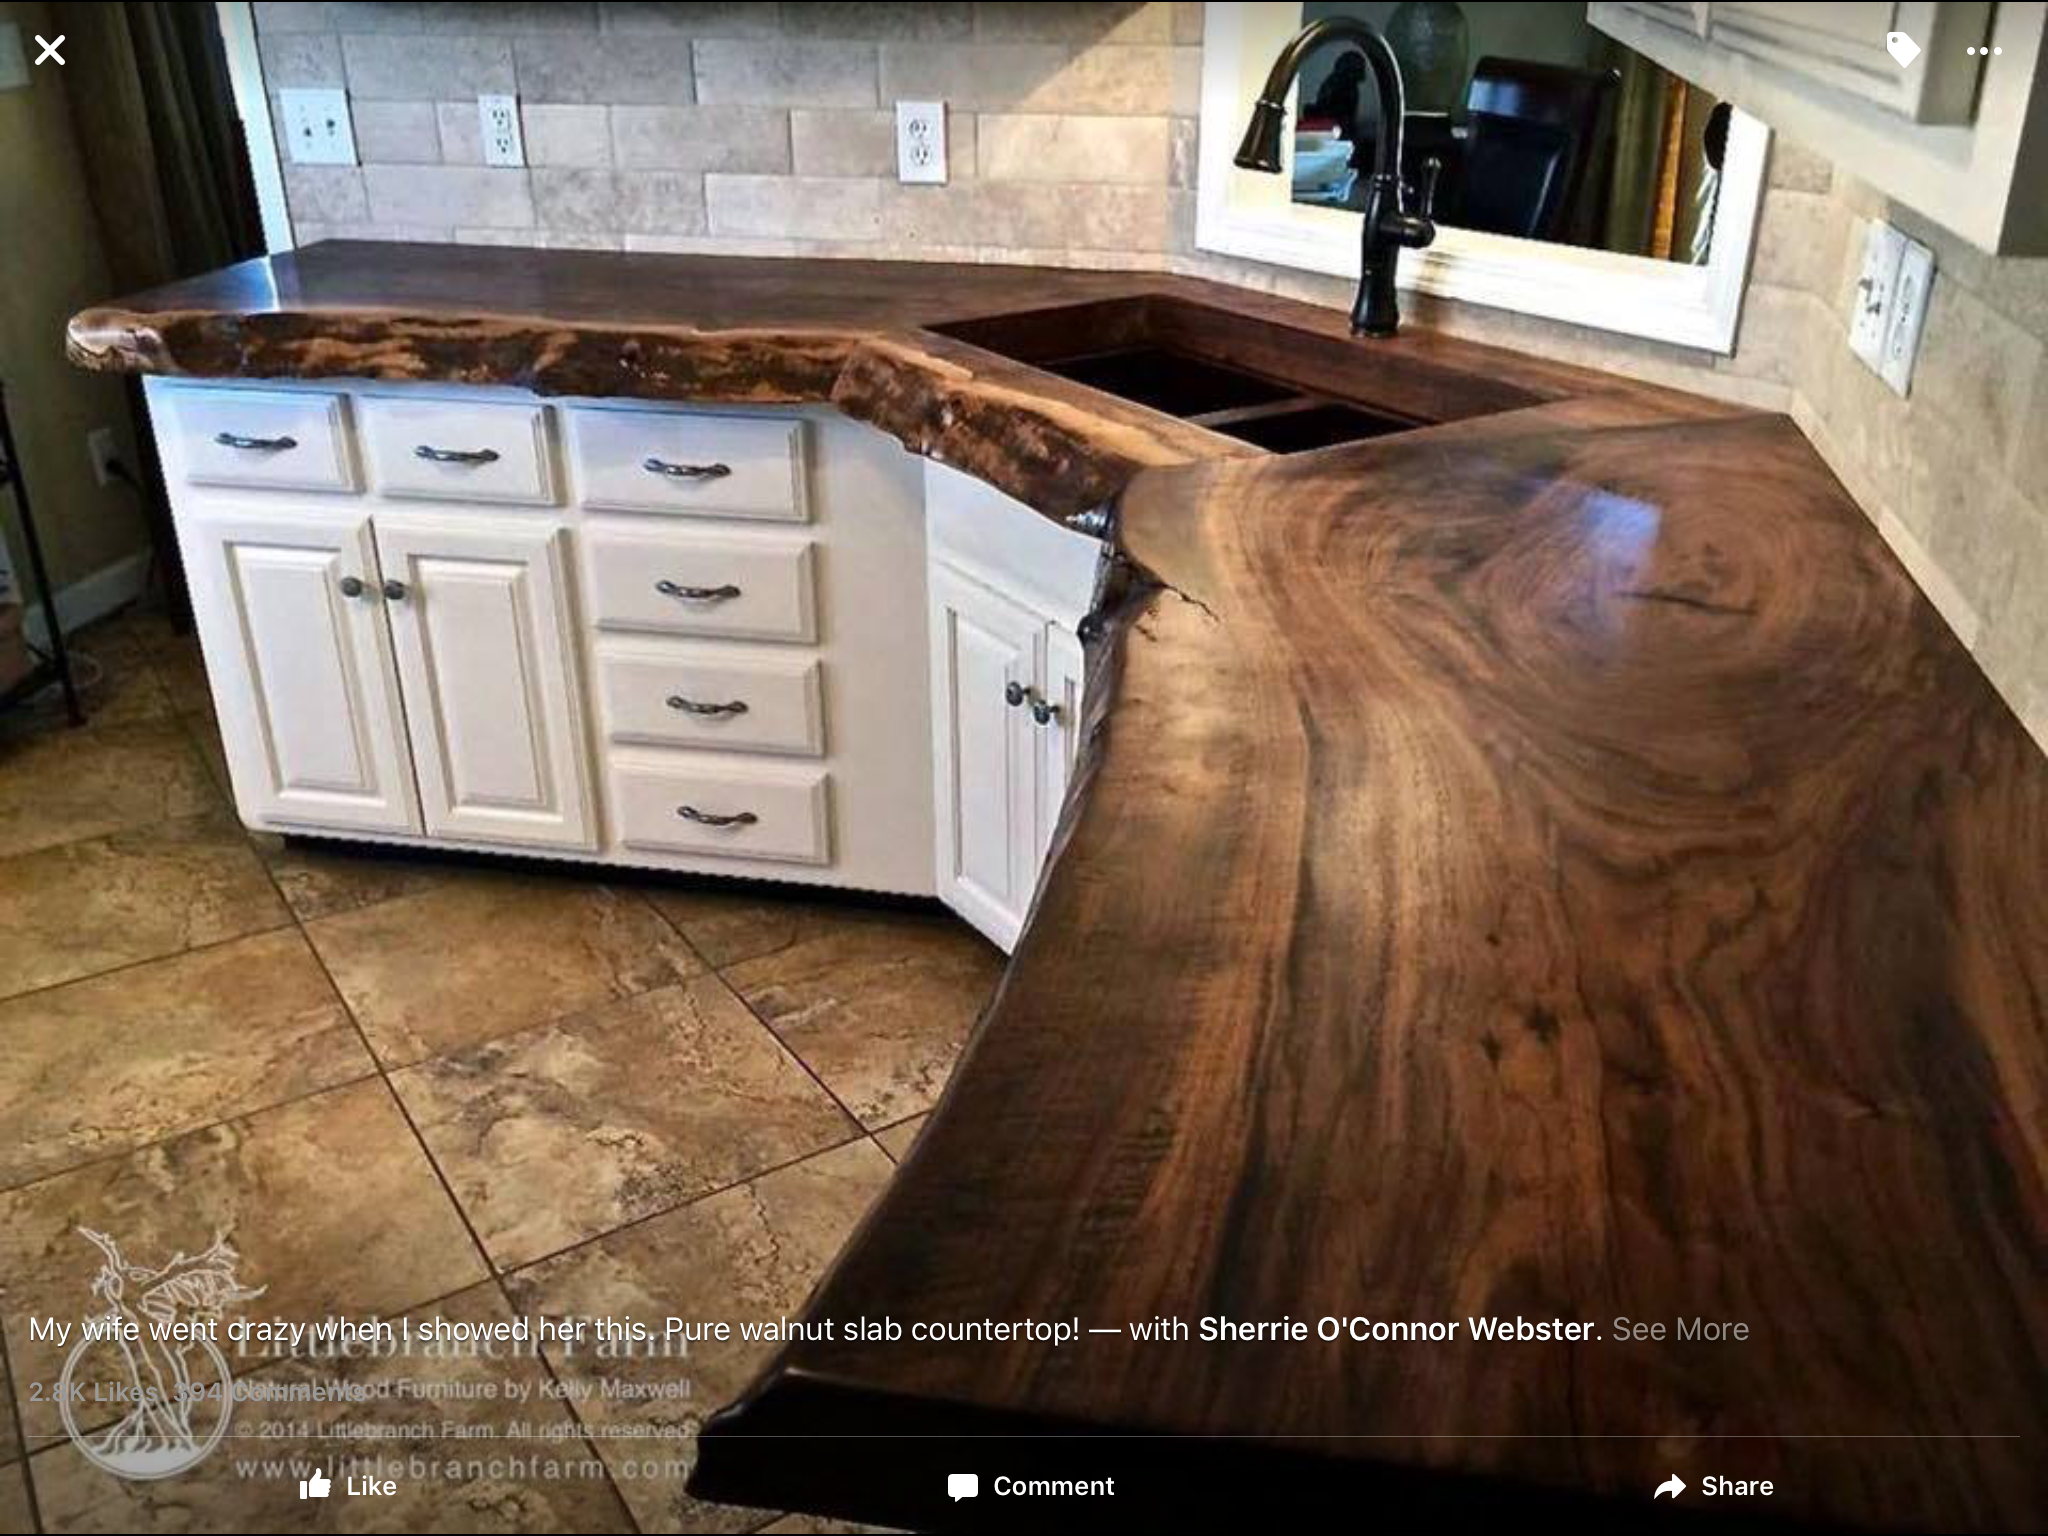 Captivating This Pure Walnut Slab Counter Top Adds Depth To This Kitchen With Its  Dark Warm Browns.